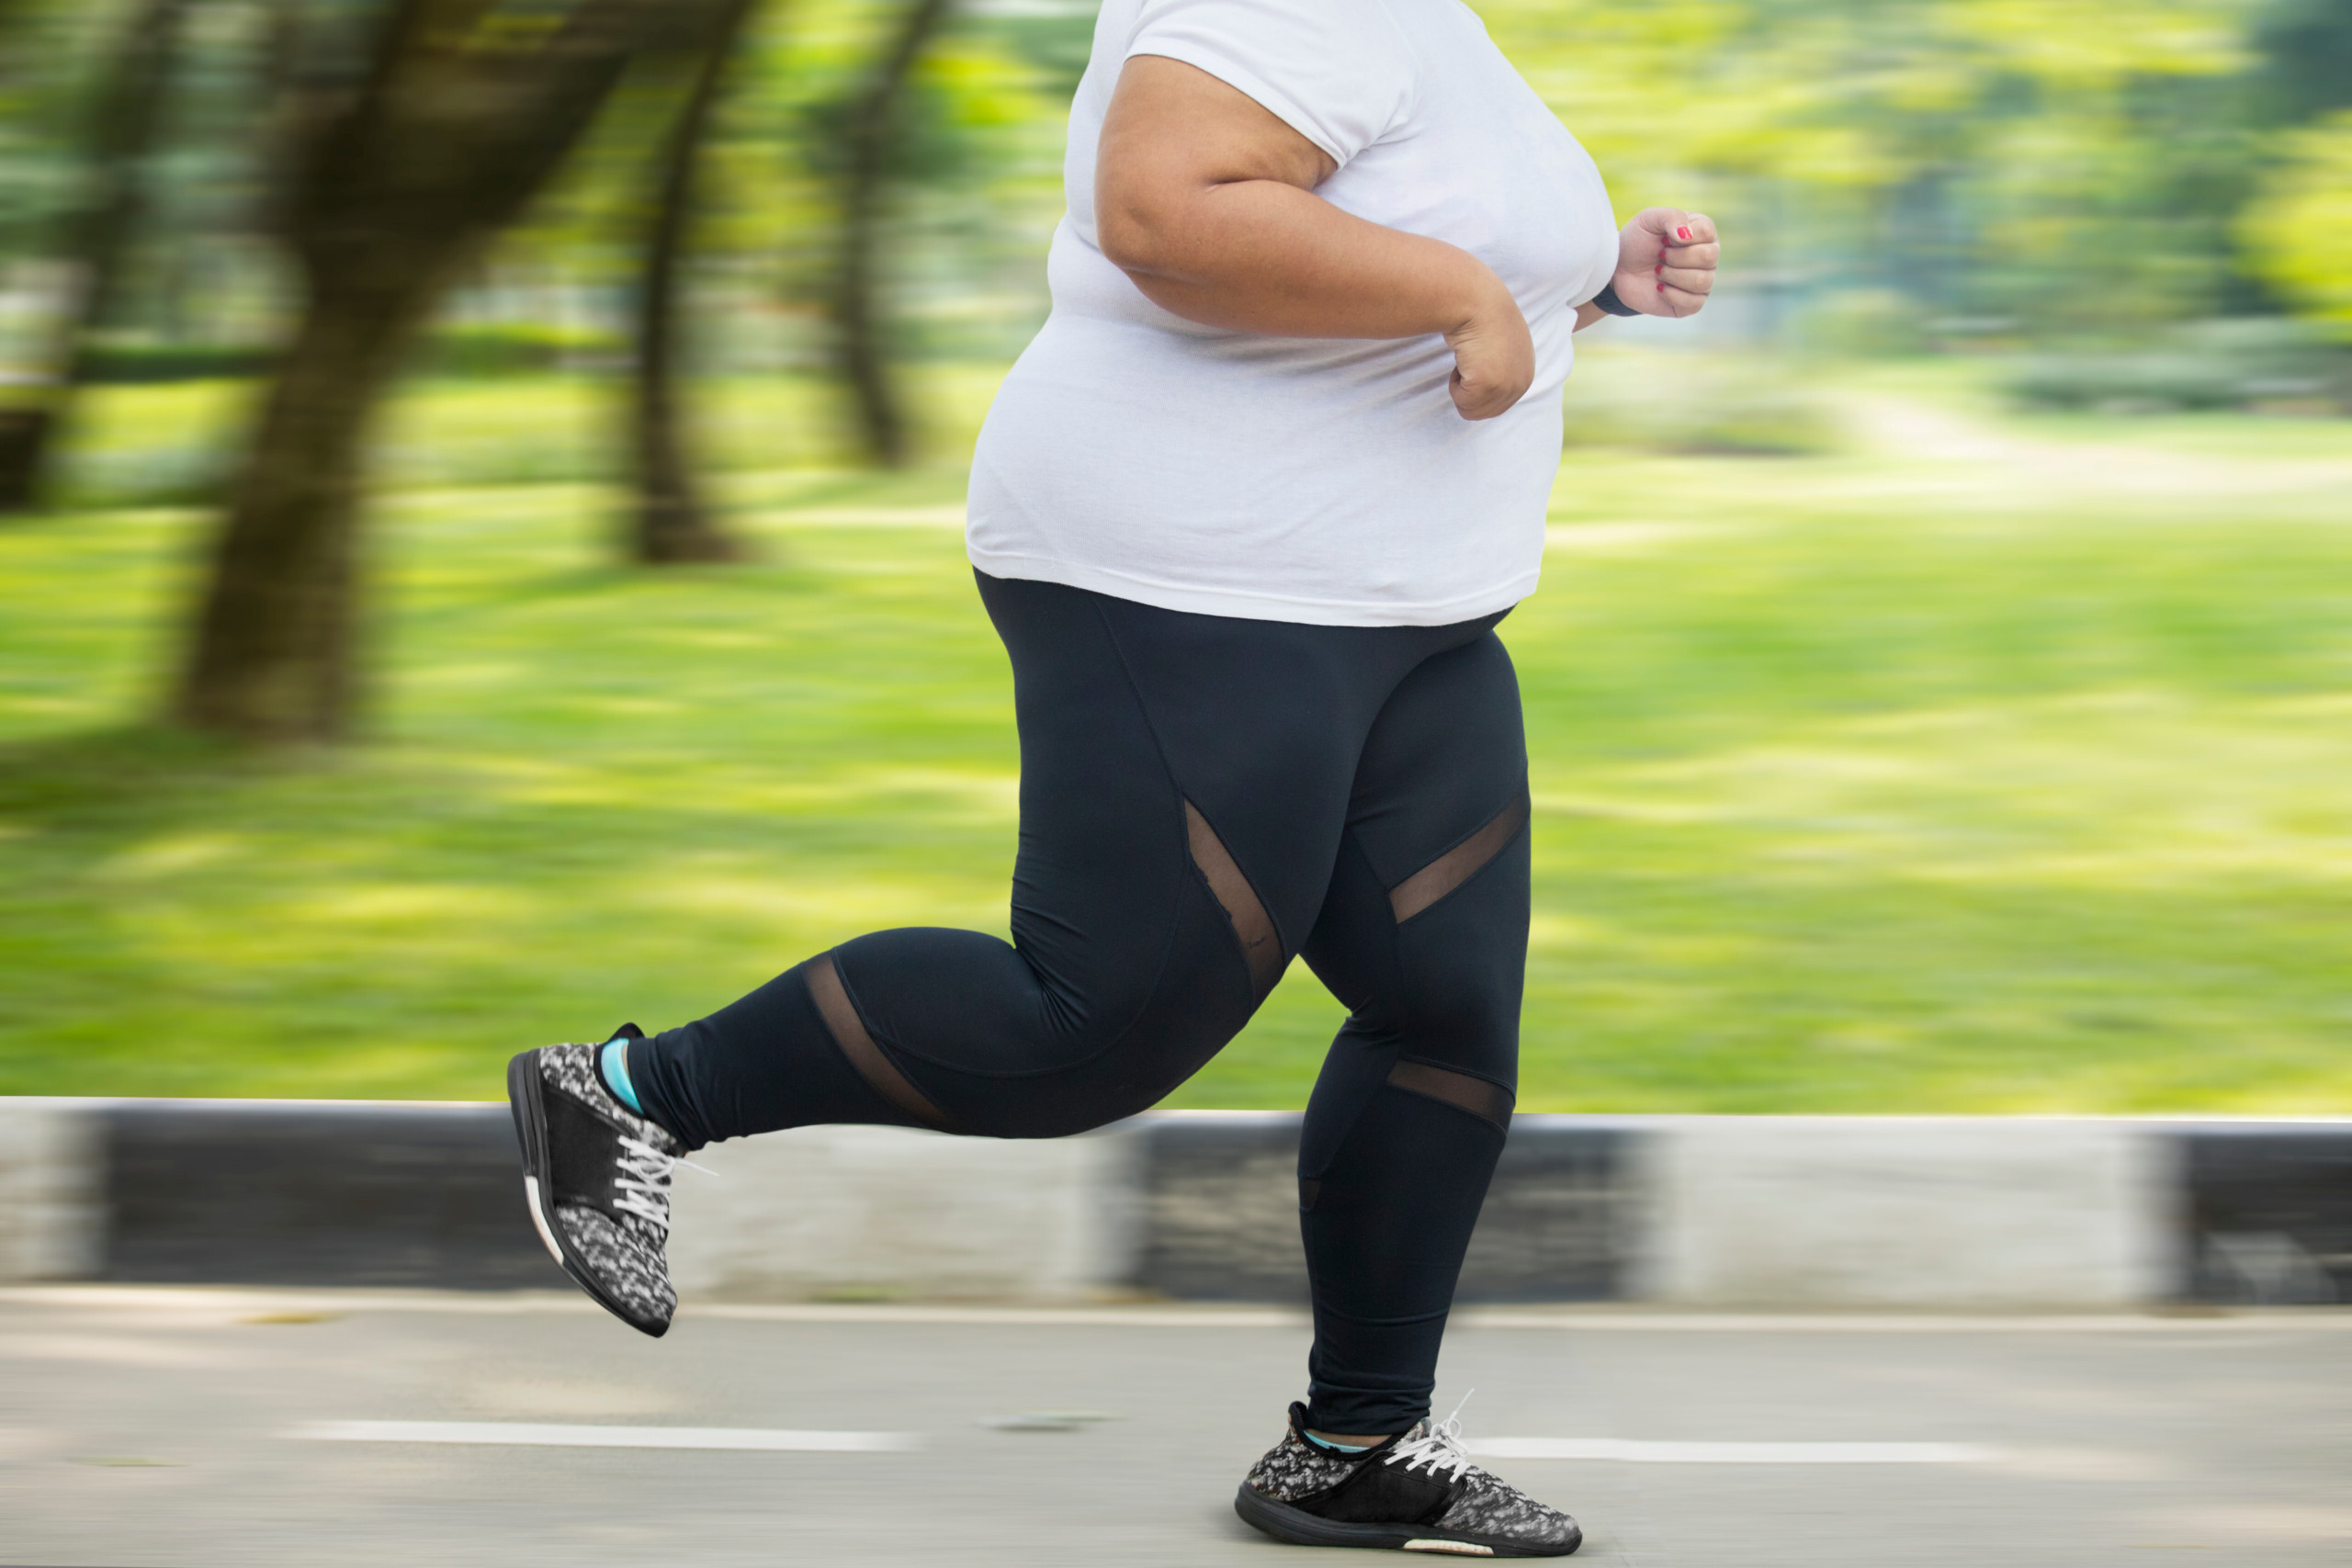 Overcome Your Fear of Jogging Outside if You're Overweight